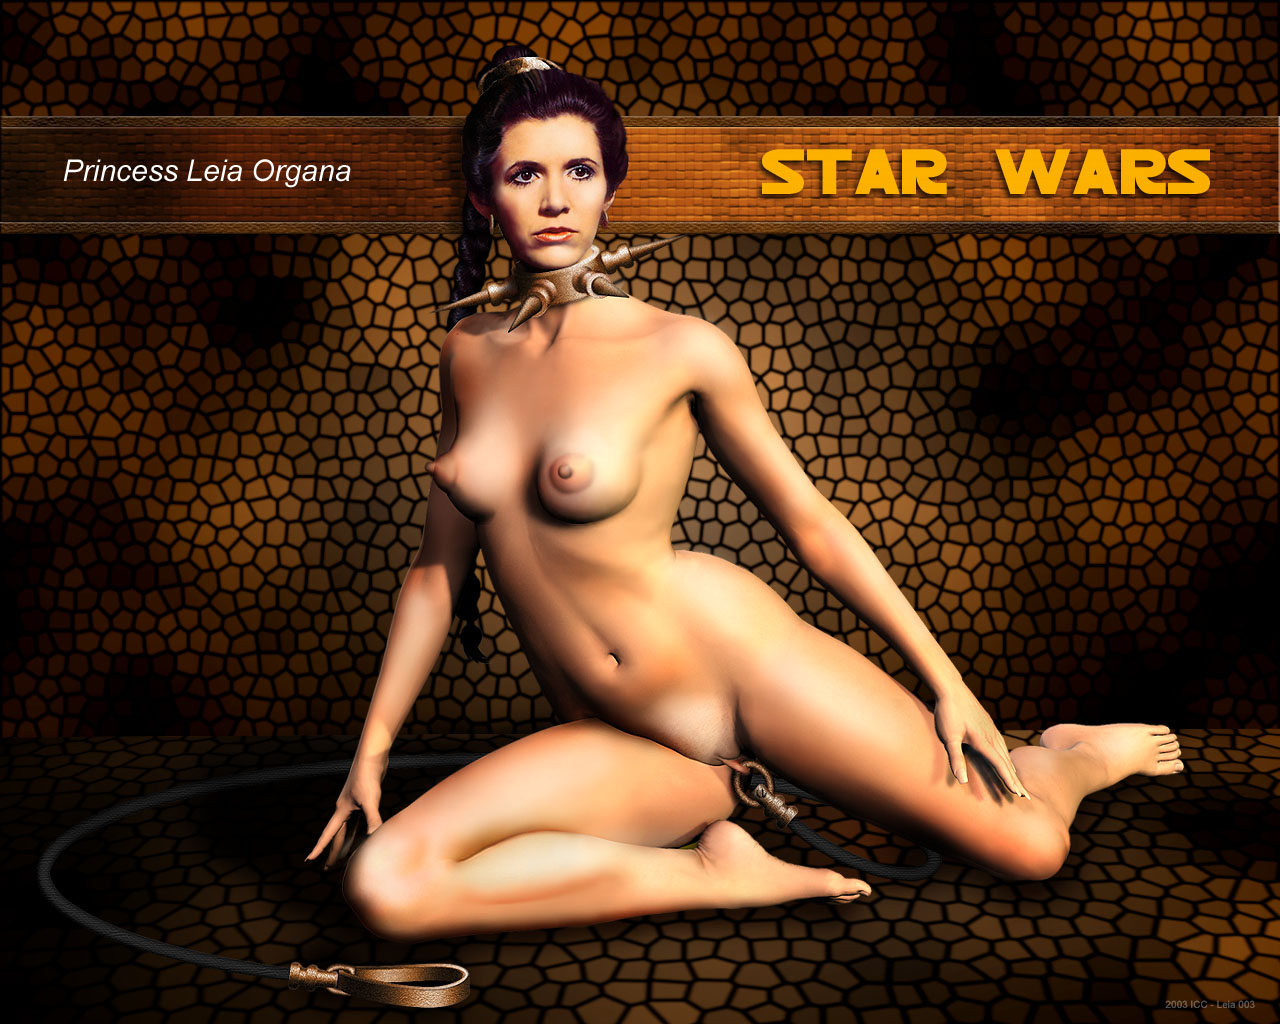 Star wars fake nude photos porno clips